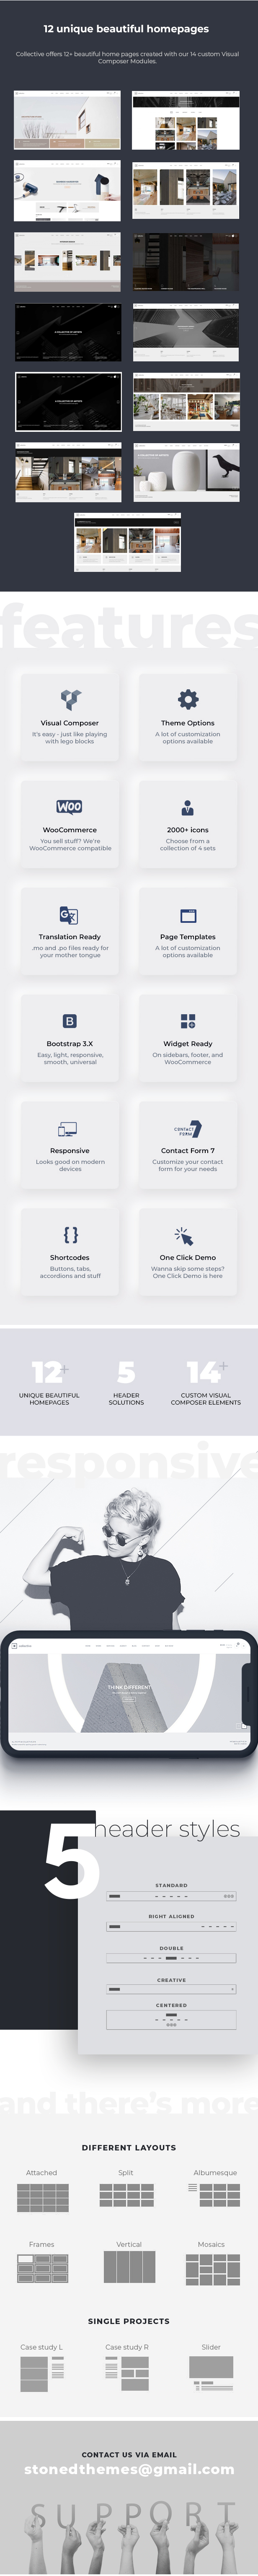 Collective - Minimal WordPress Theme - 2